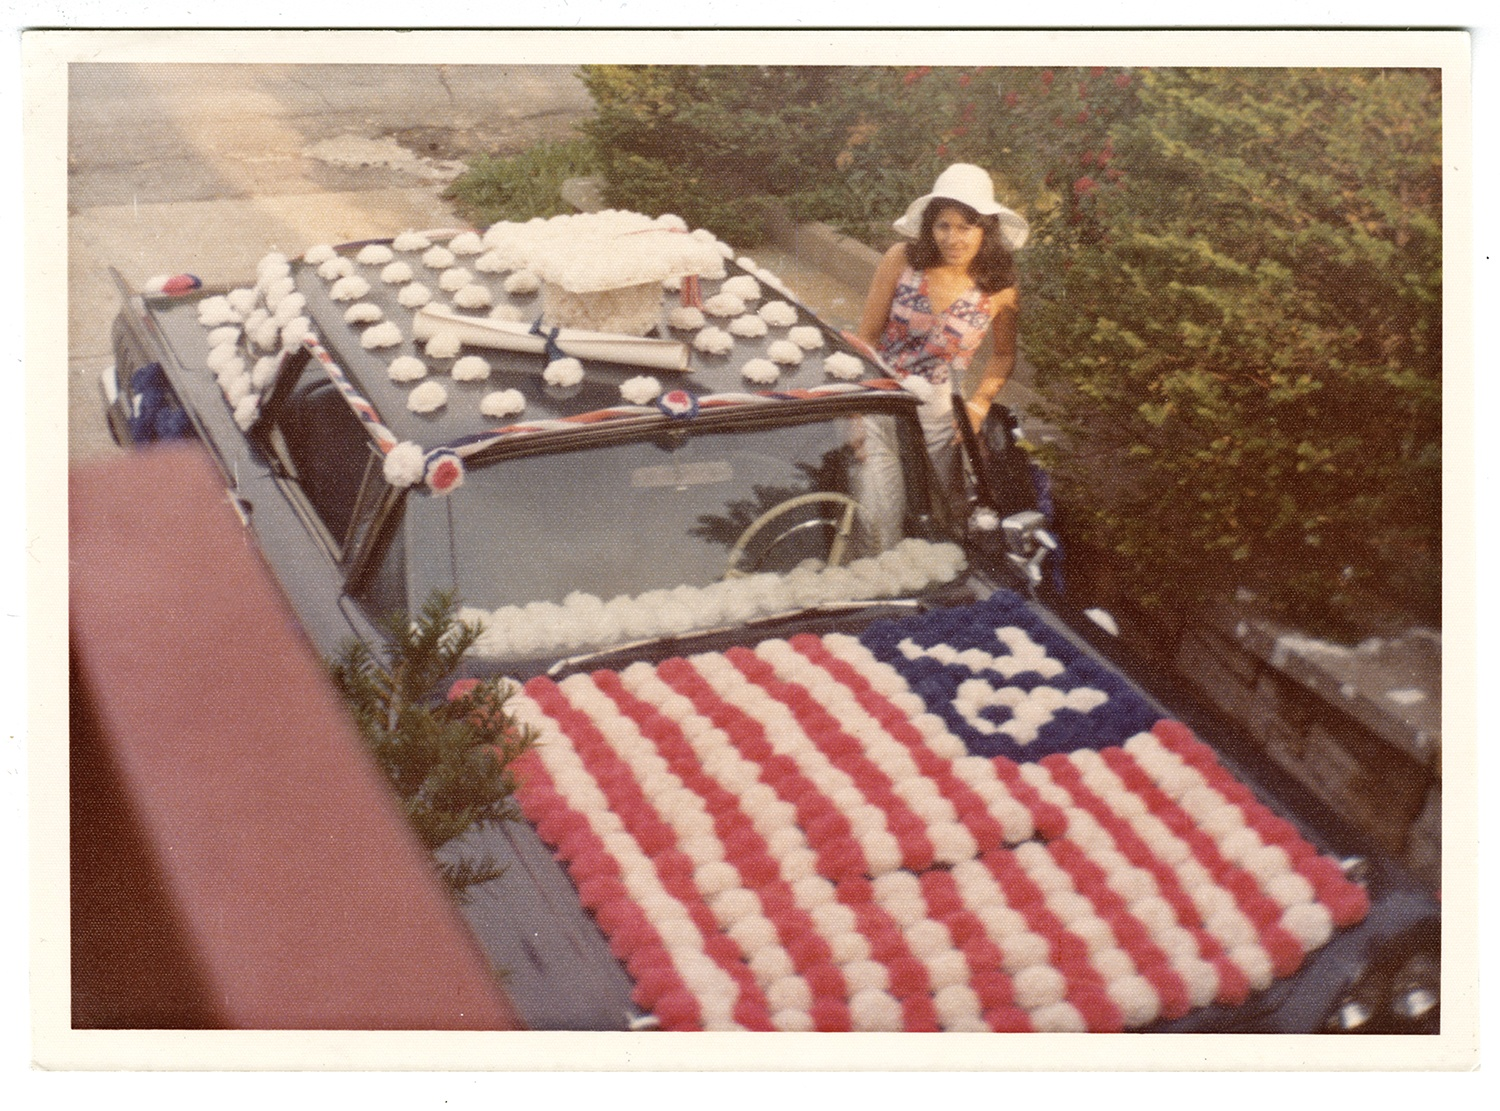 By the 1970s, Italian Americans had not only assimilated into American society, but embraced their hybrid identity in displays of pride for Italy and America. The Pasquale family of Beechview decorated their car for the American Bicentennial, 1976. Gift of Angela Pasquale